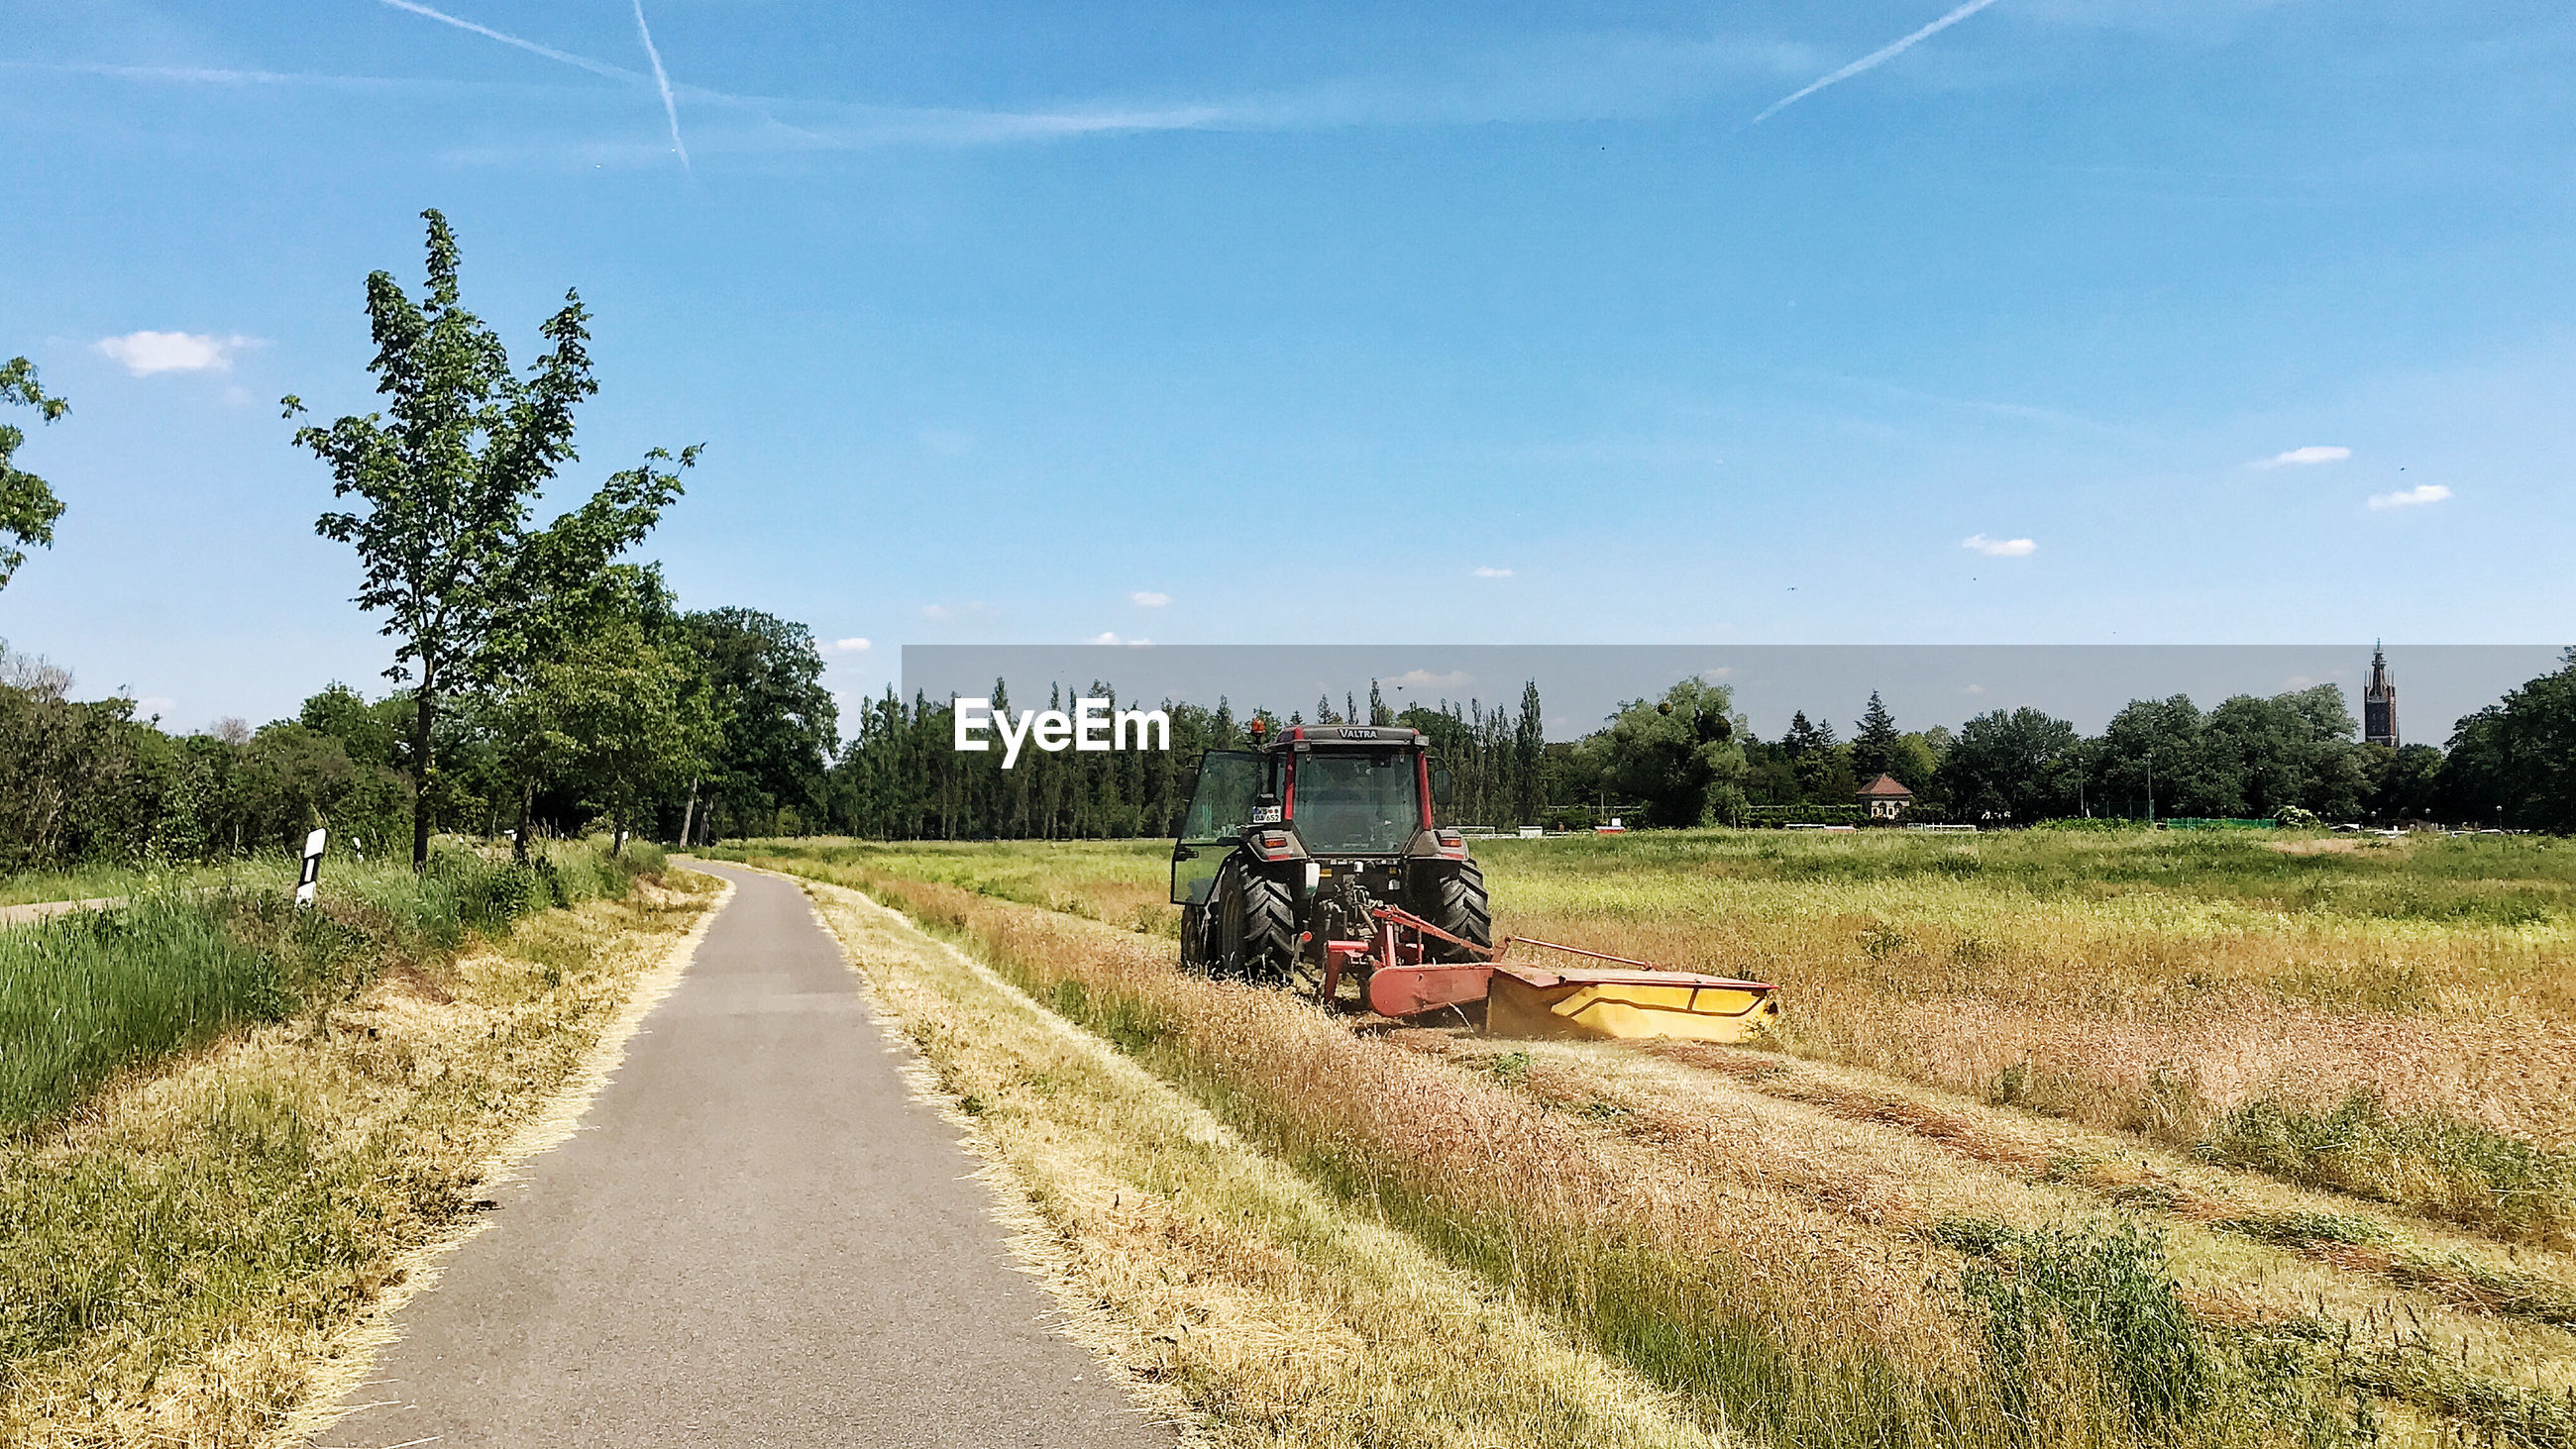 TRACTOR ON ROAD AMIDST FIELD